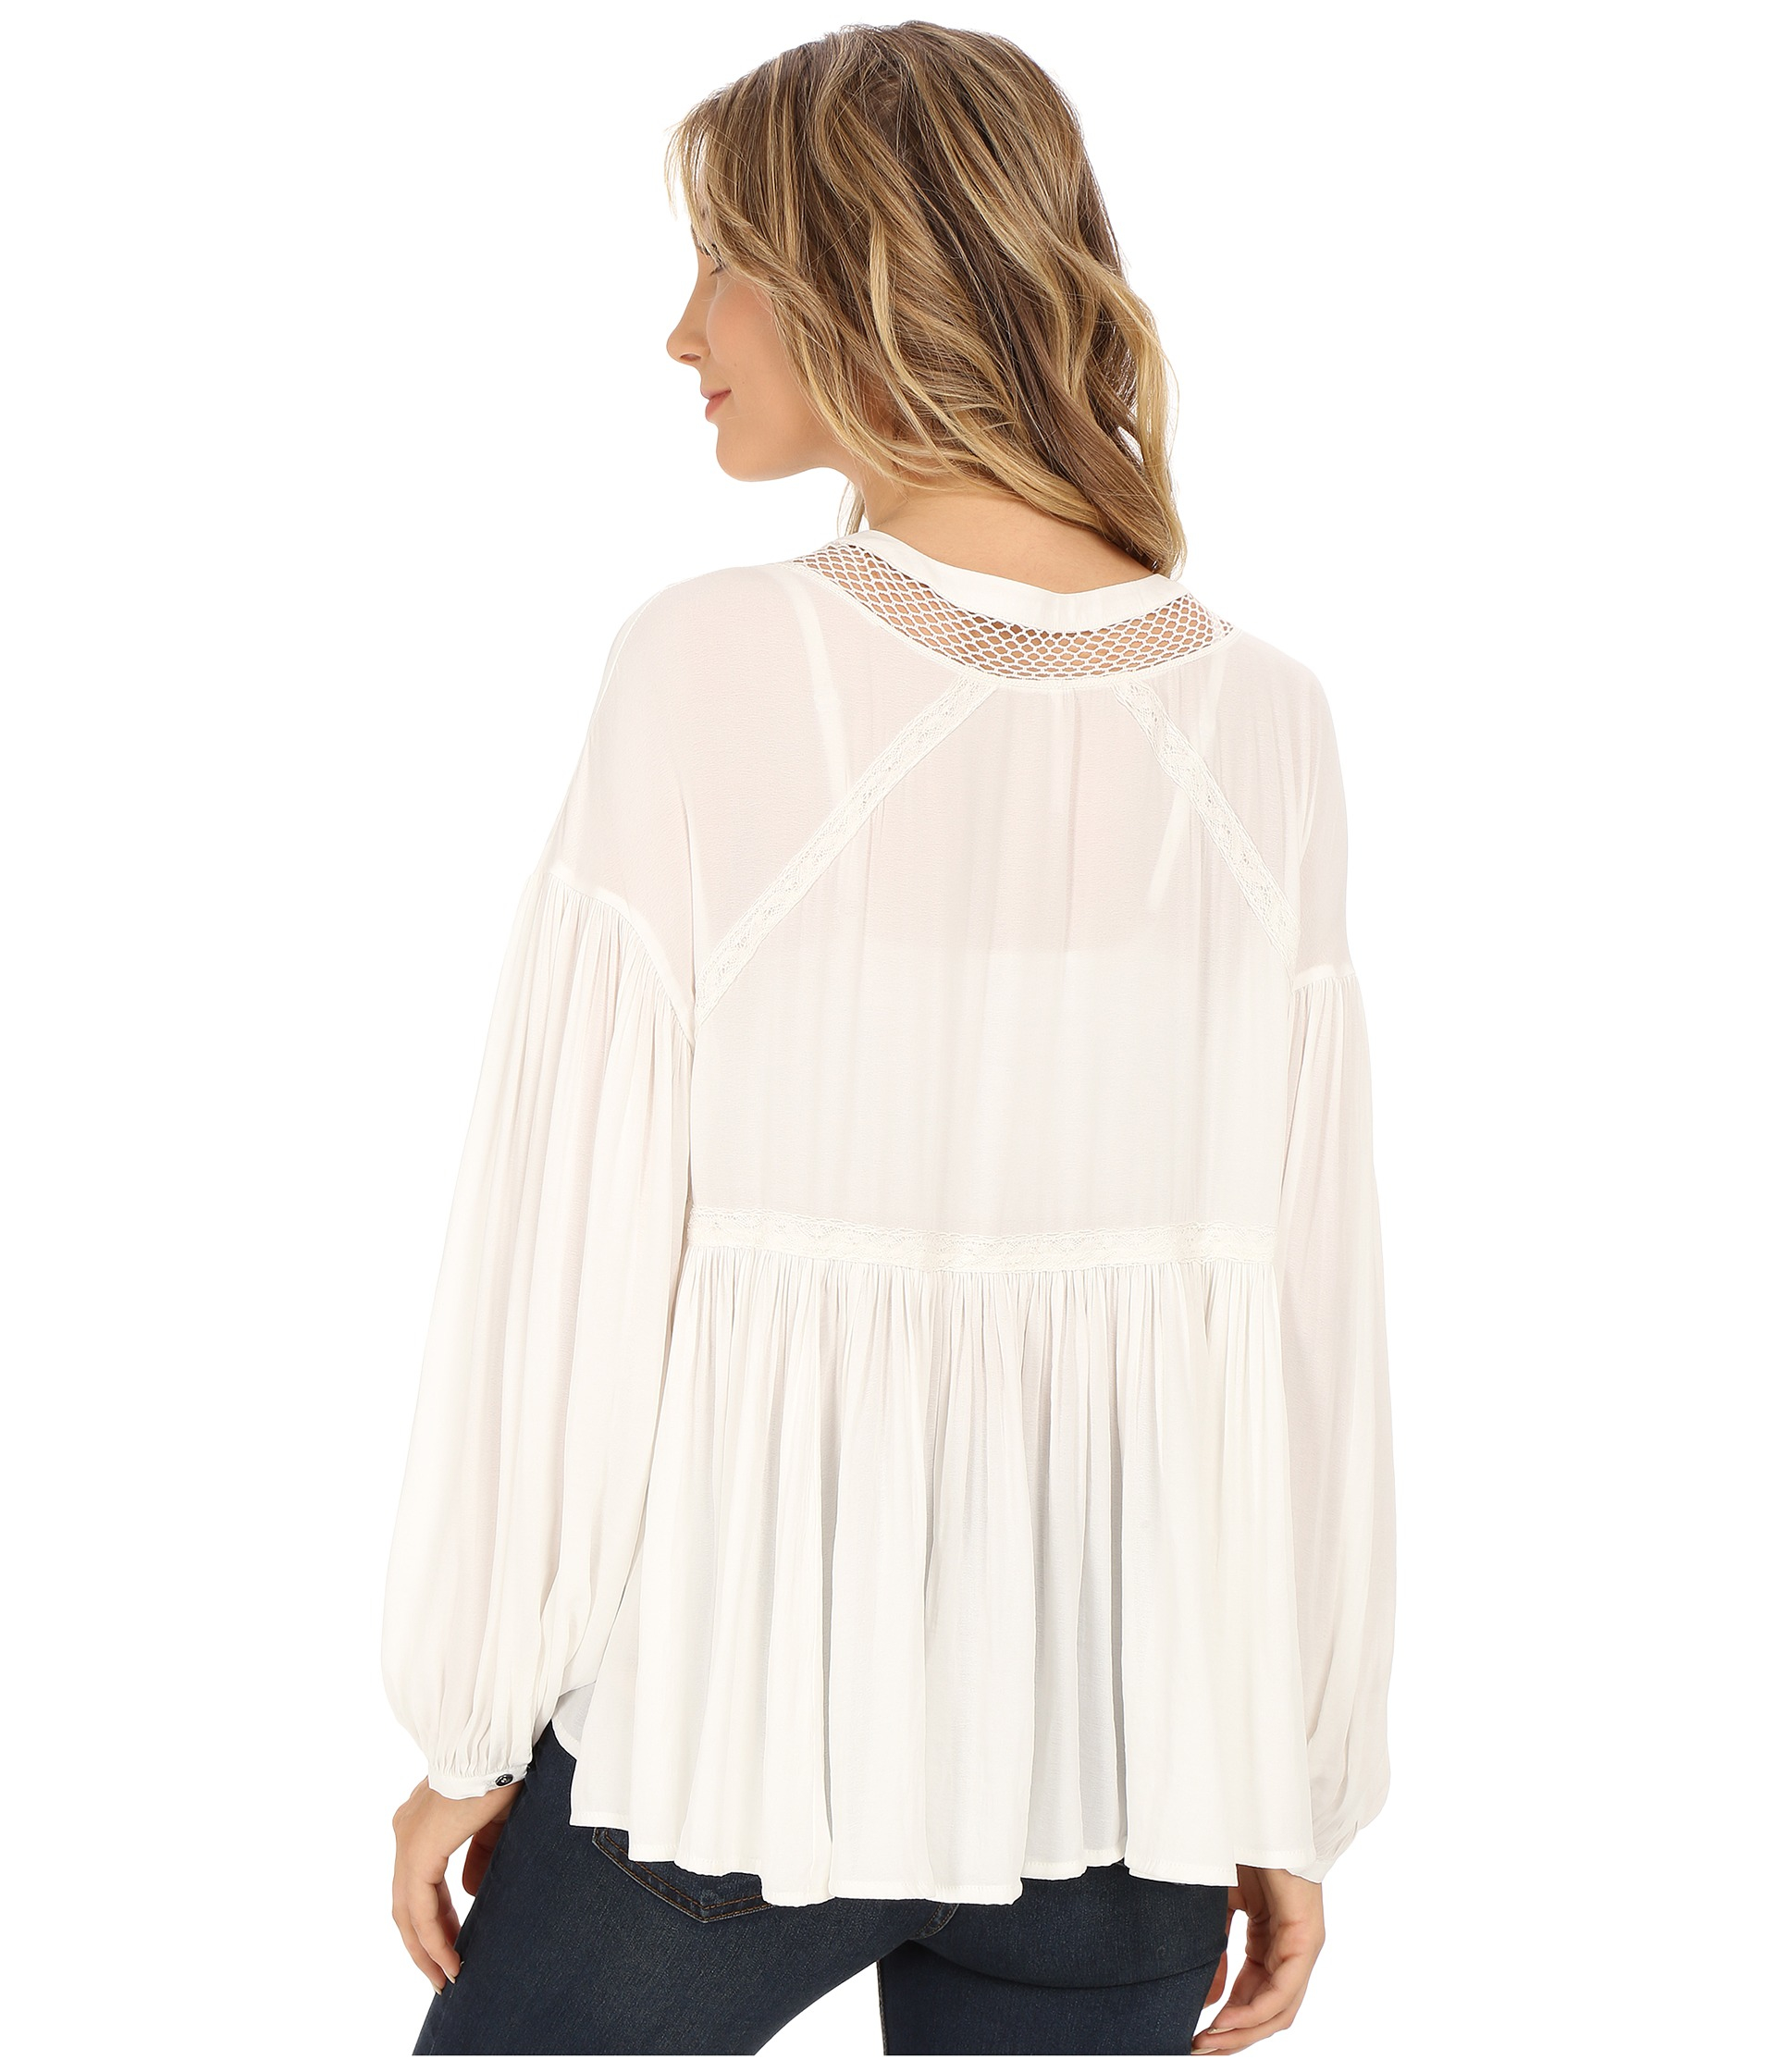 Free People Don T Let Go Peasant Top In White Lyst